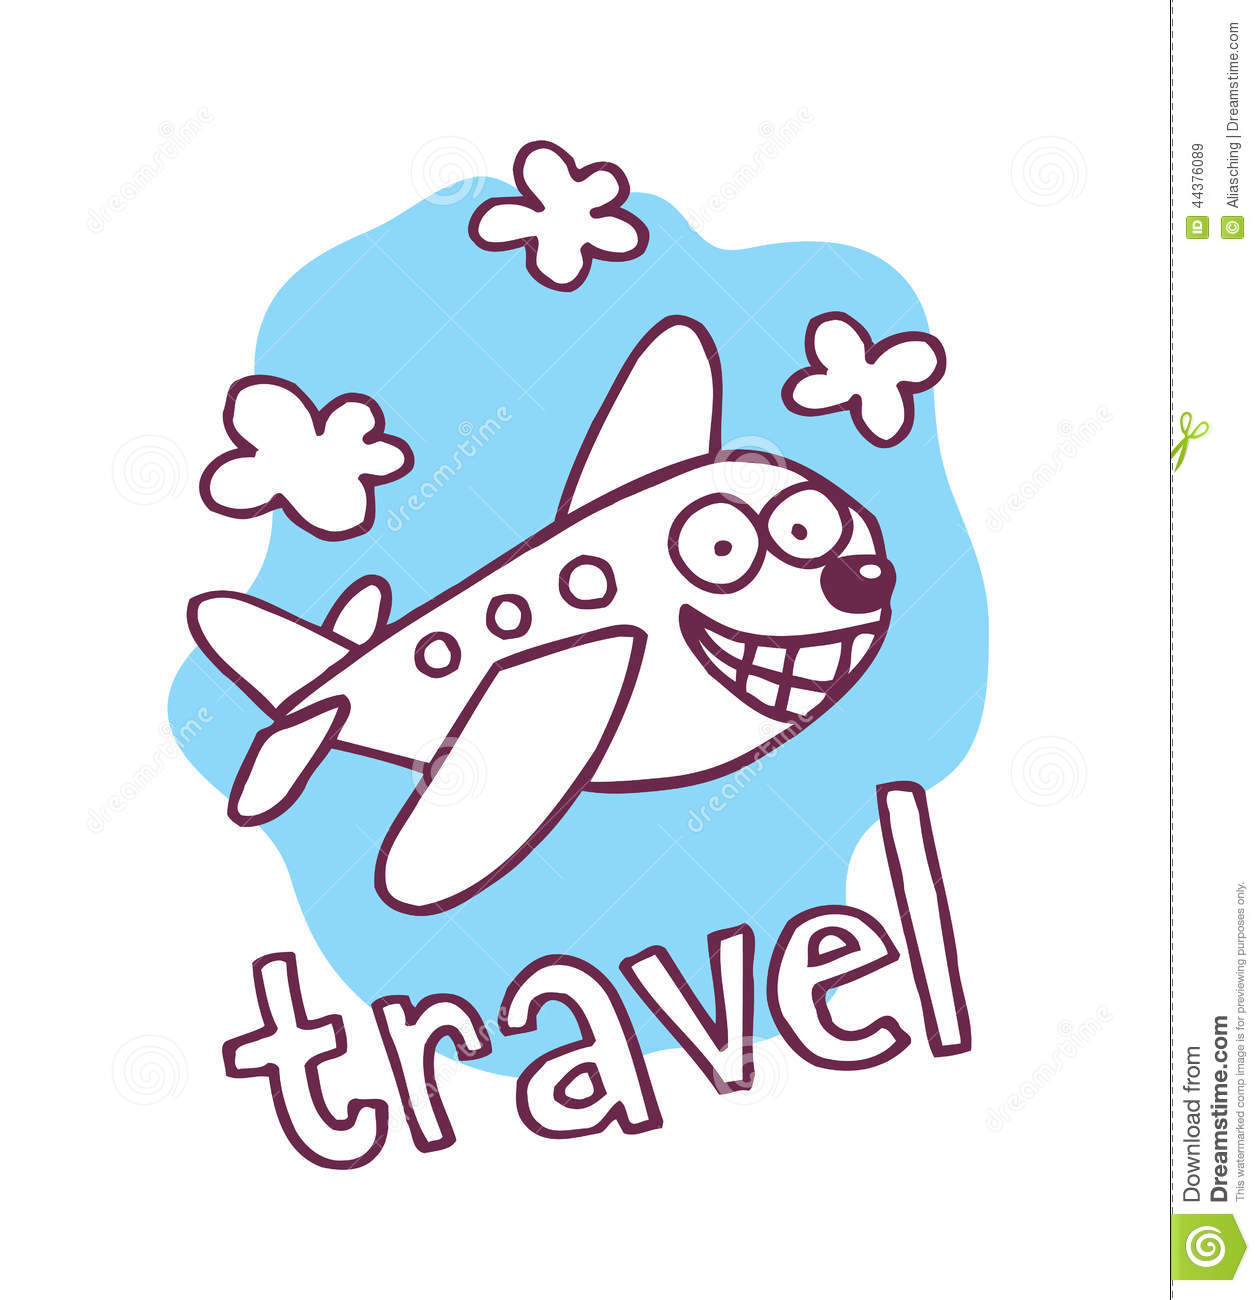 Cute Cartoon Airplane Mascot Stock Vector Illustration Of